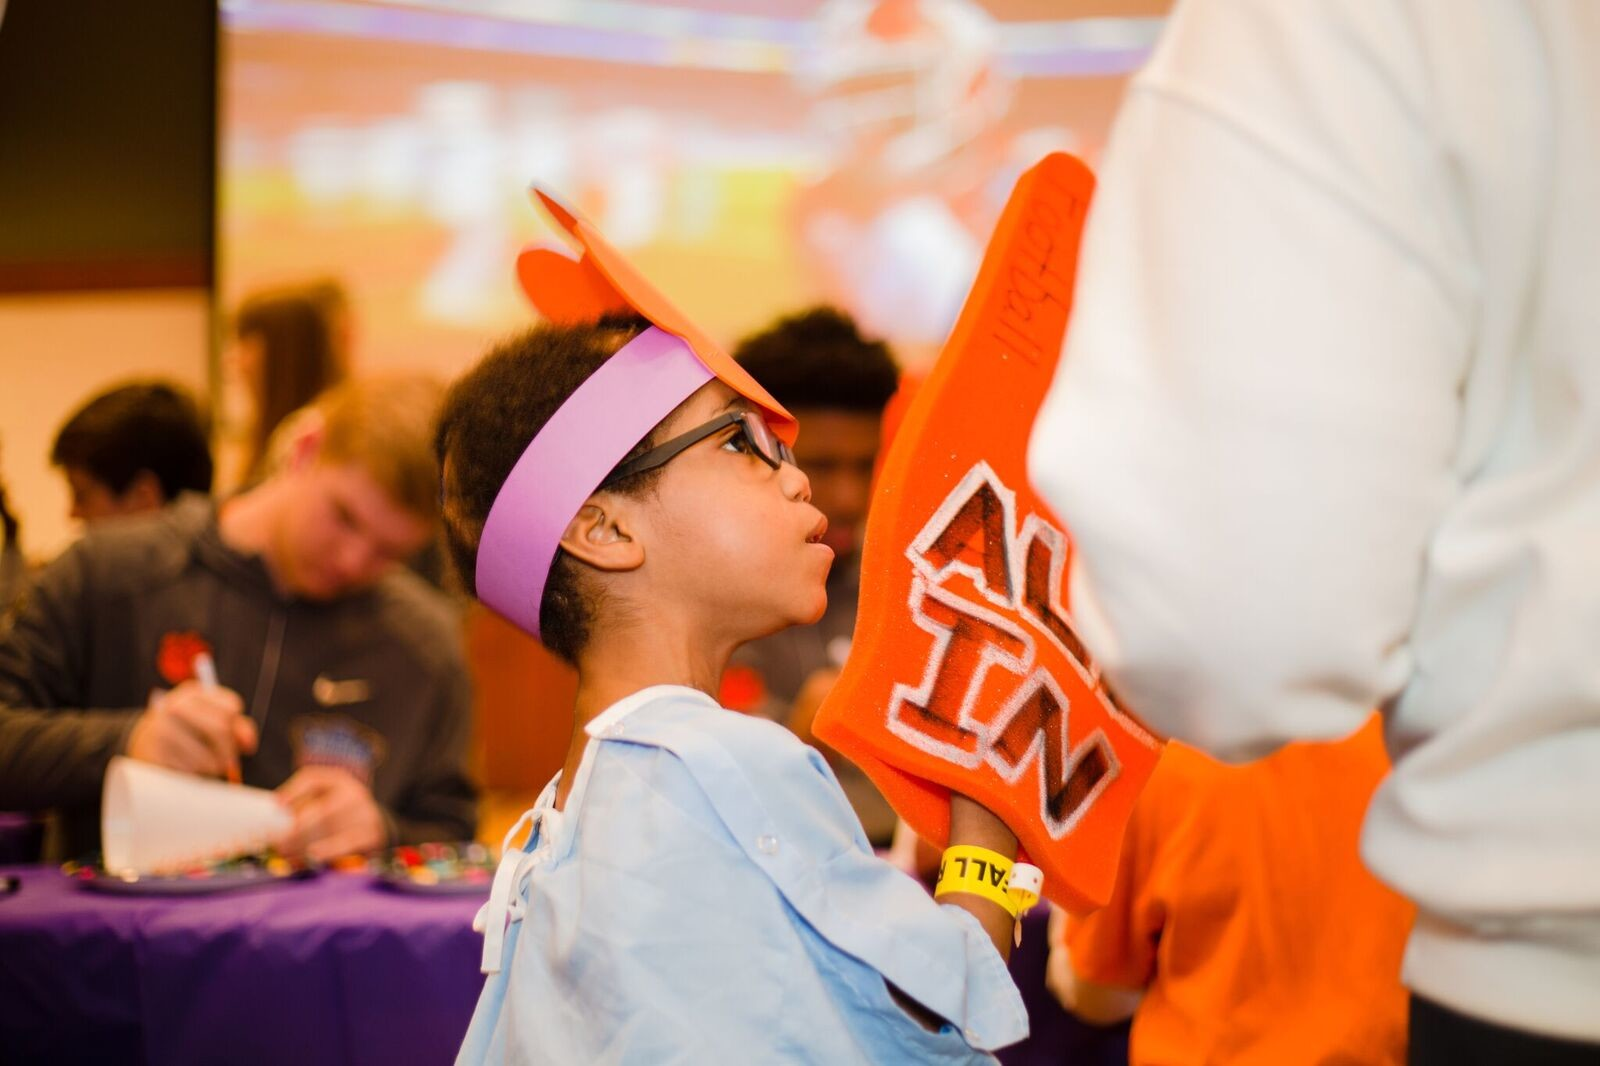 Scenes from the Clemson football team visiting patients at Ochsner Baptist Children's Hospital on Saturday in New Orleans. The visit was part of a schedule of appearances for the team leading up to Monday's playoff game against Alabama for a chance to go to the national championship game.